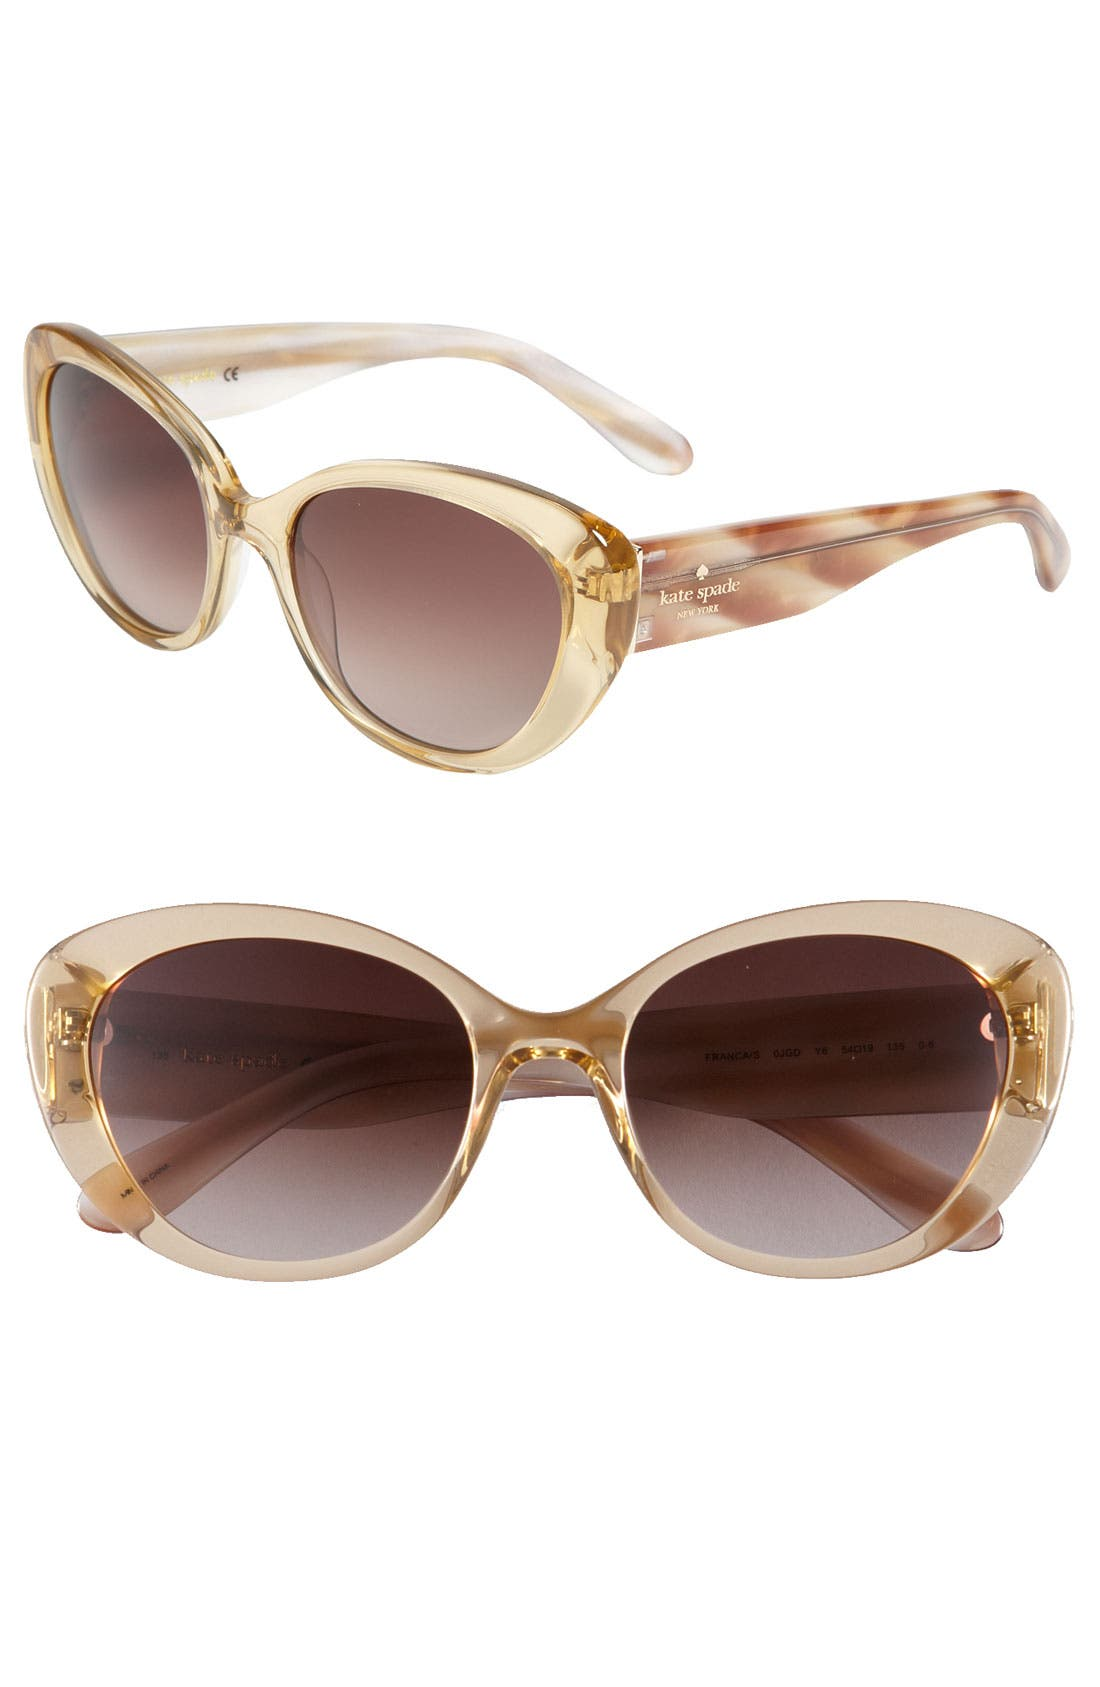 Main Image - kate spade new york 'franca' 54mm cat's eye sunglasses